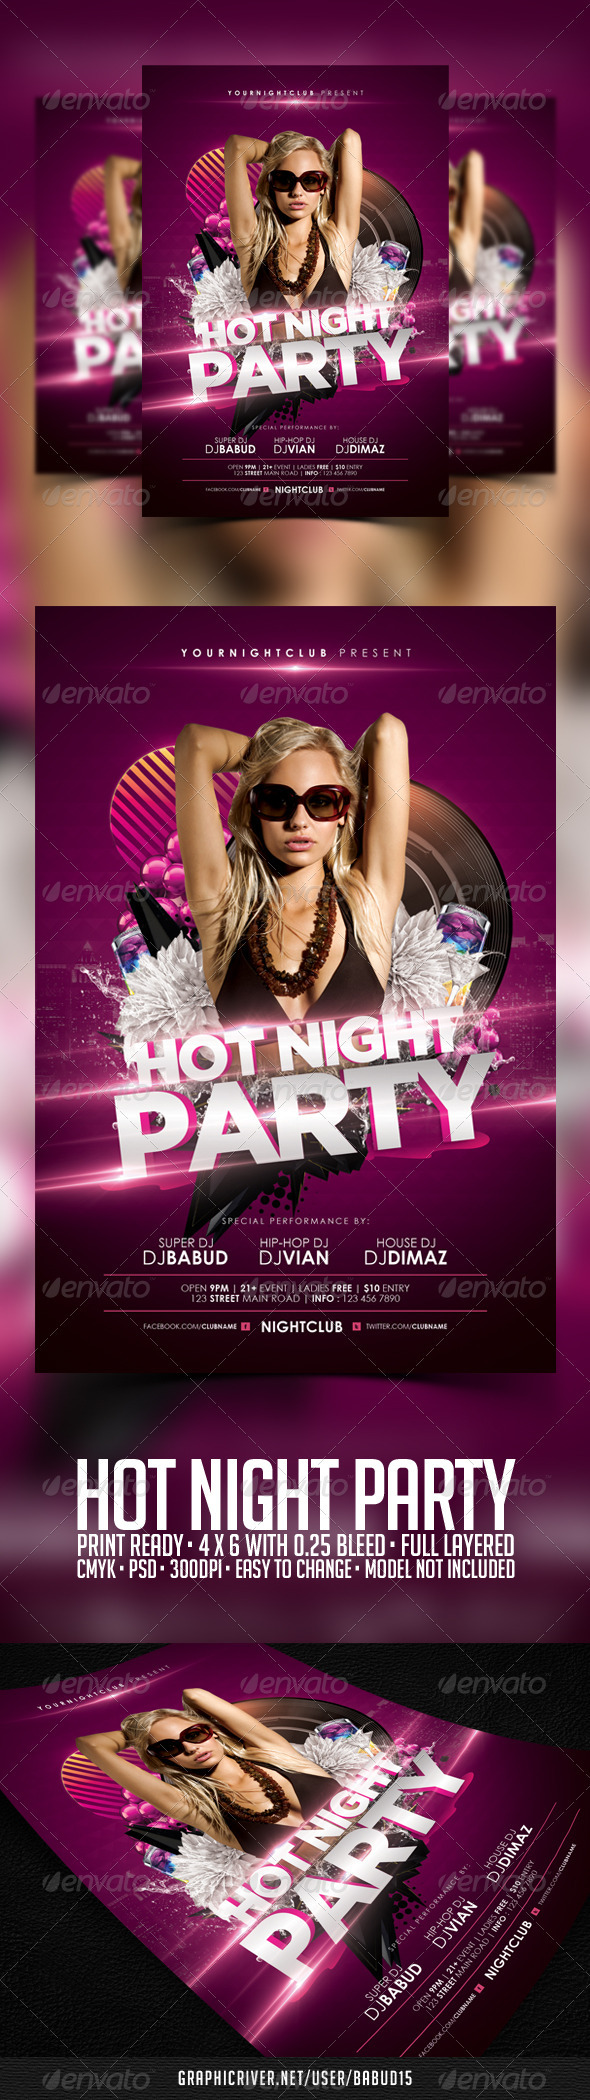 Hot Night Party Flyer Template - Events Flyers